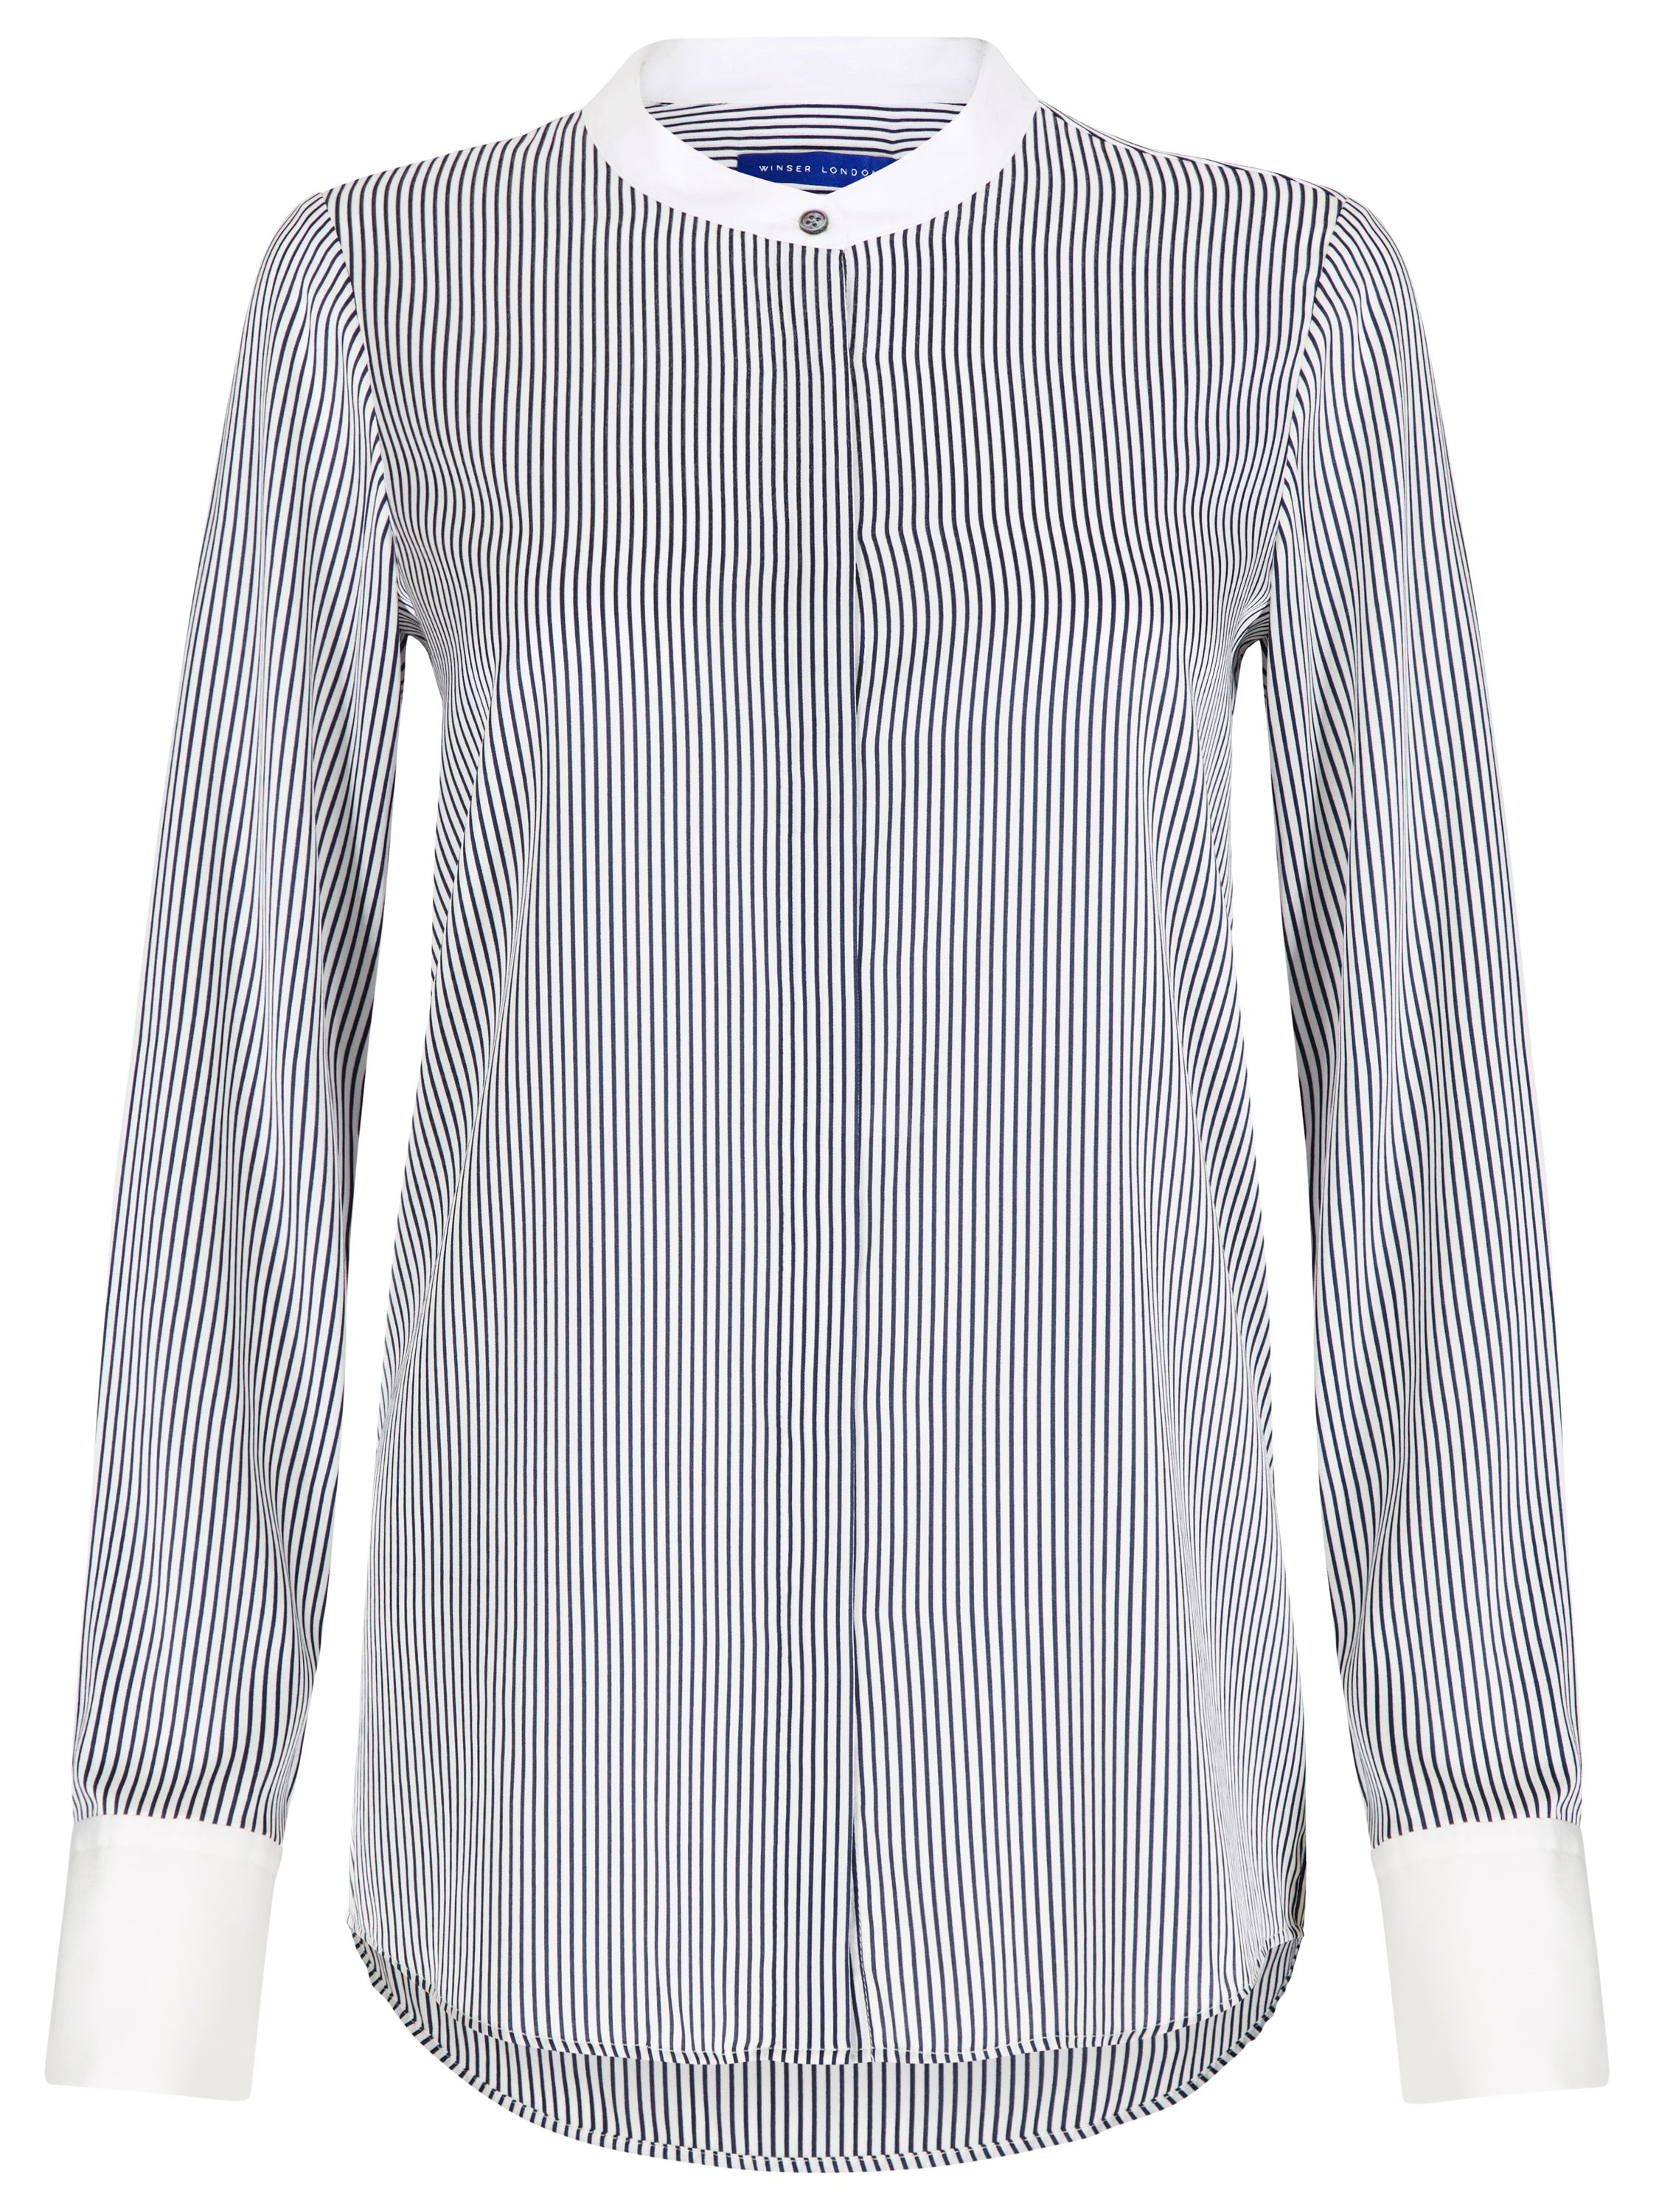 Winser London Lightweight Silk Striped Shirt, Blue